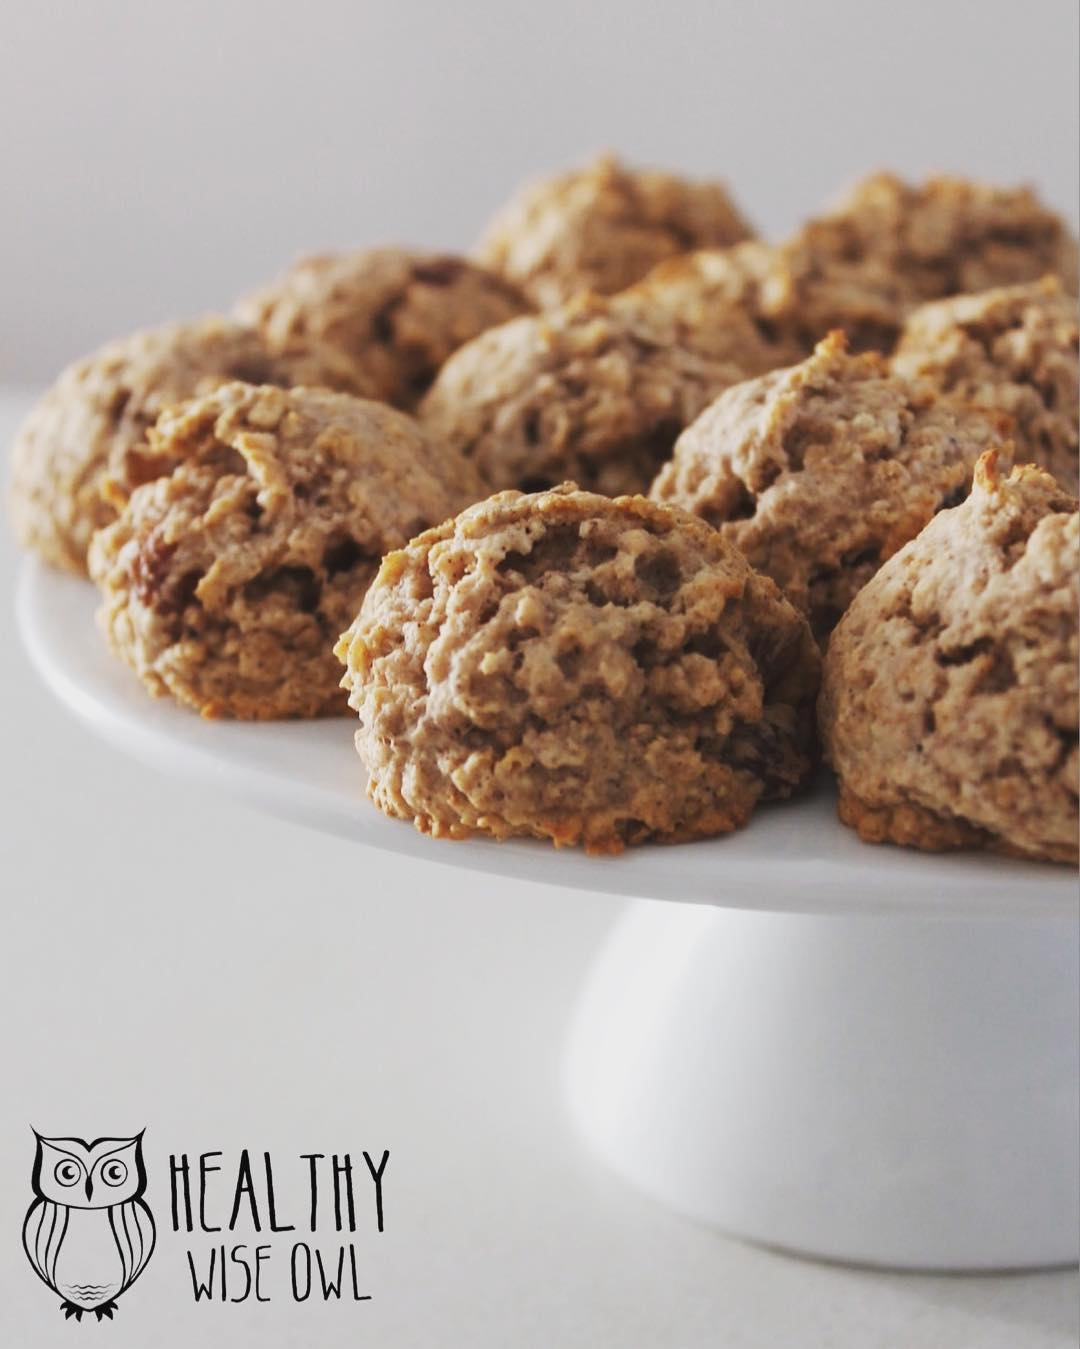 healthy oatmeal raisin breakfast cookies by @healthywiseowl